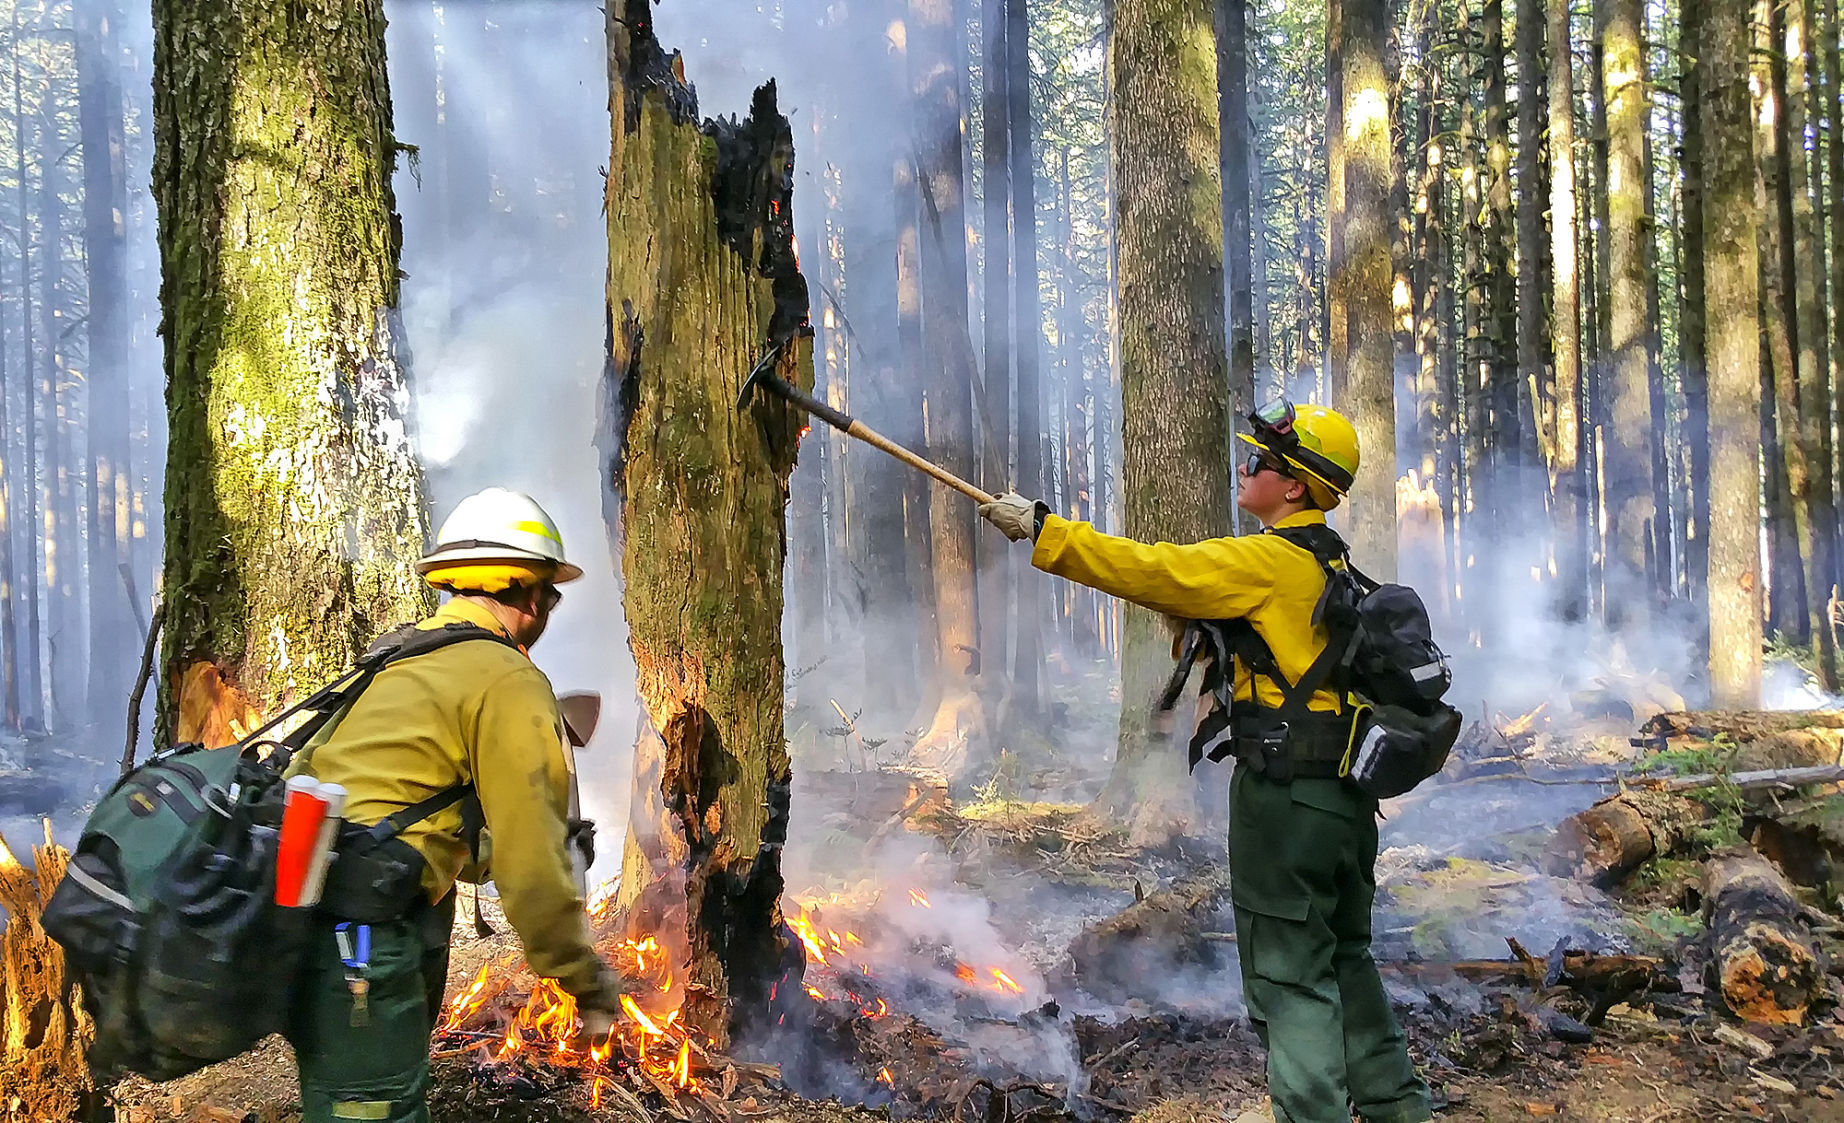 Eagle Creek Fire 17 percent contained, more than 37500 acres burned